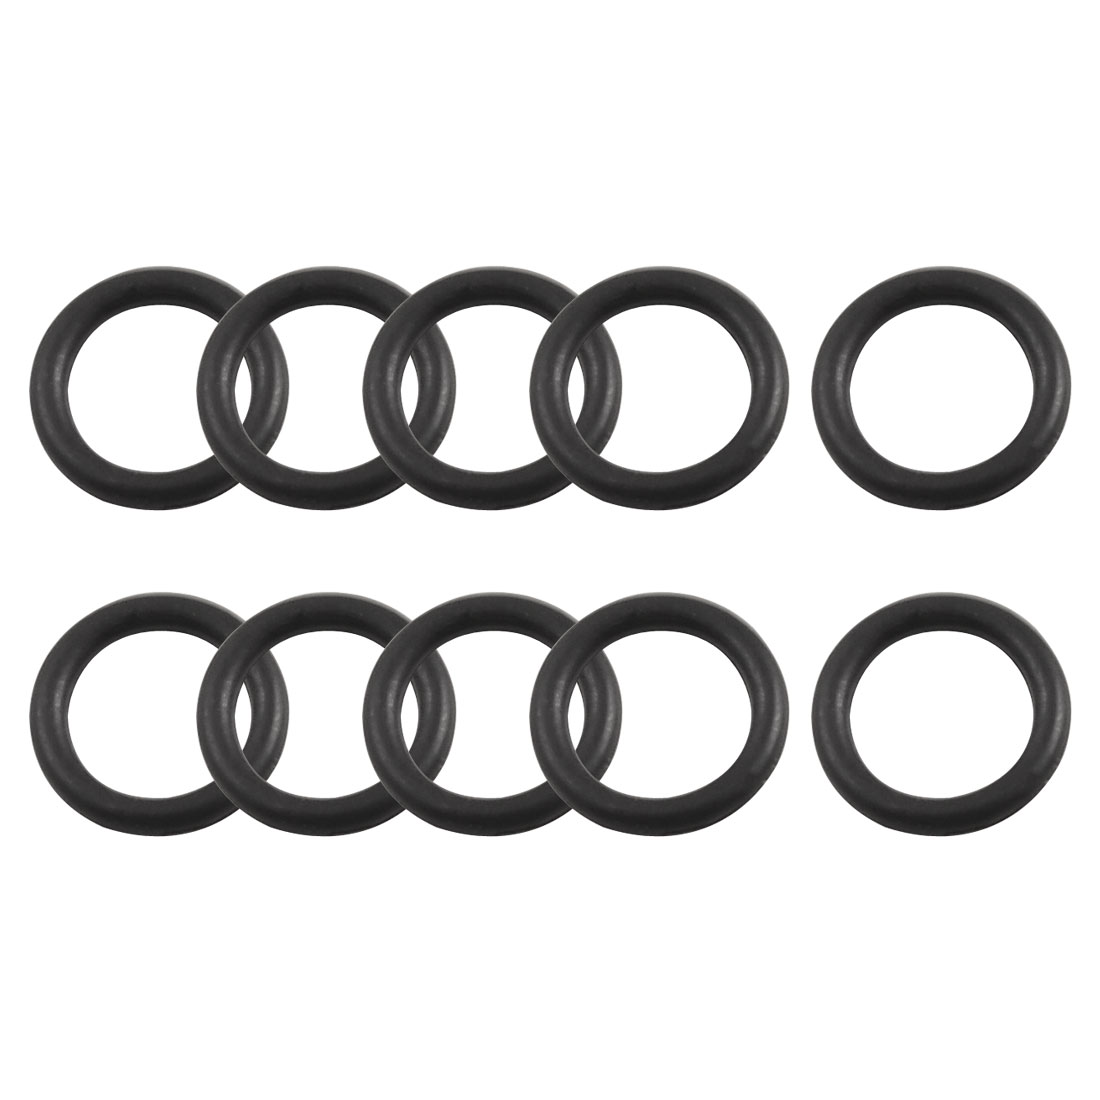 10 Pcs 8mm x 1.8mm Flexible Rubber Oil Seal O Ring Gasket Black